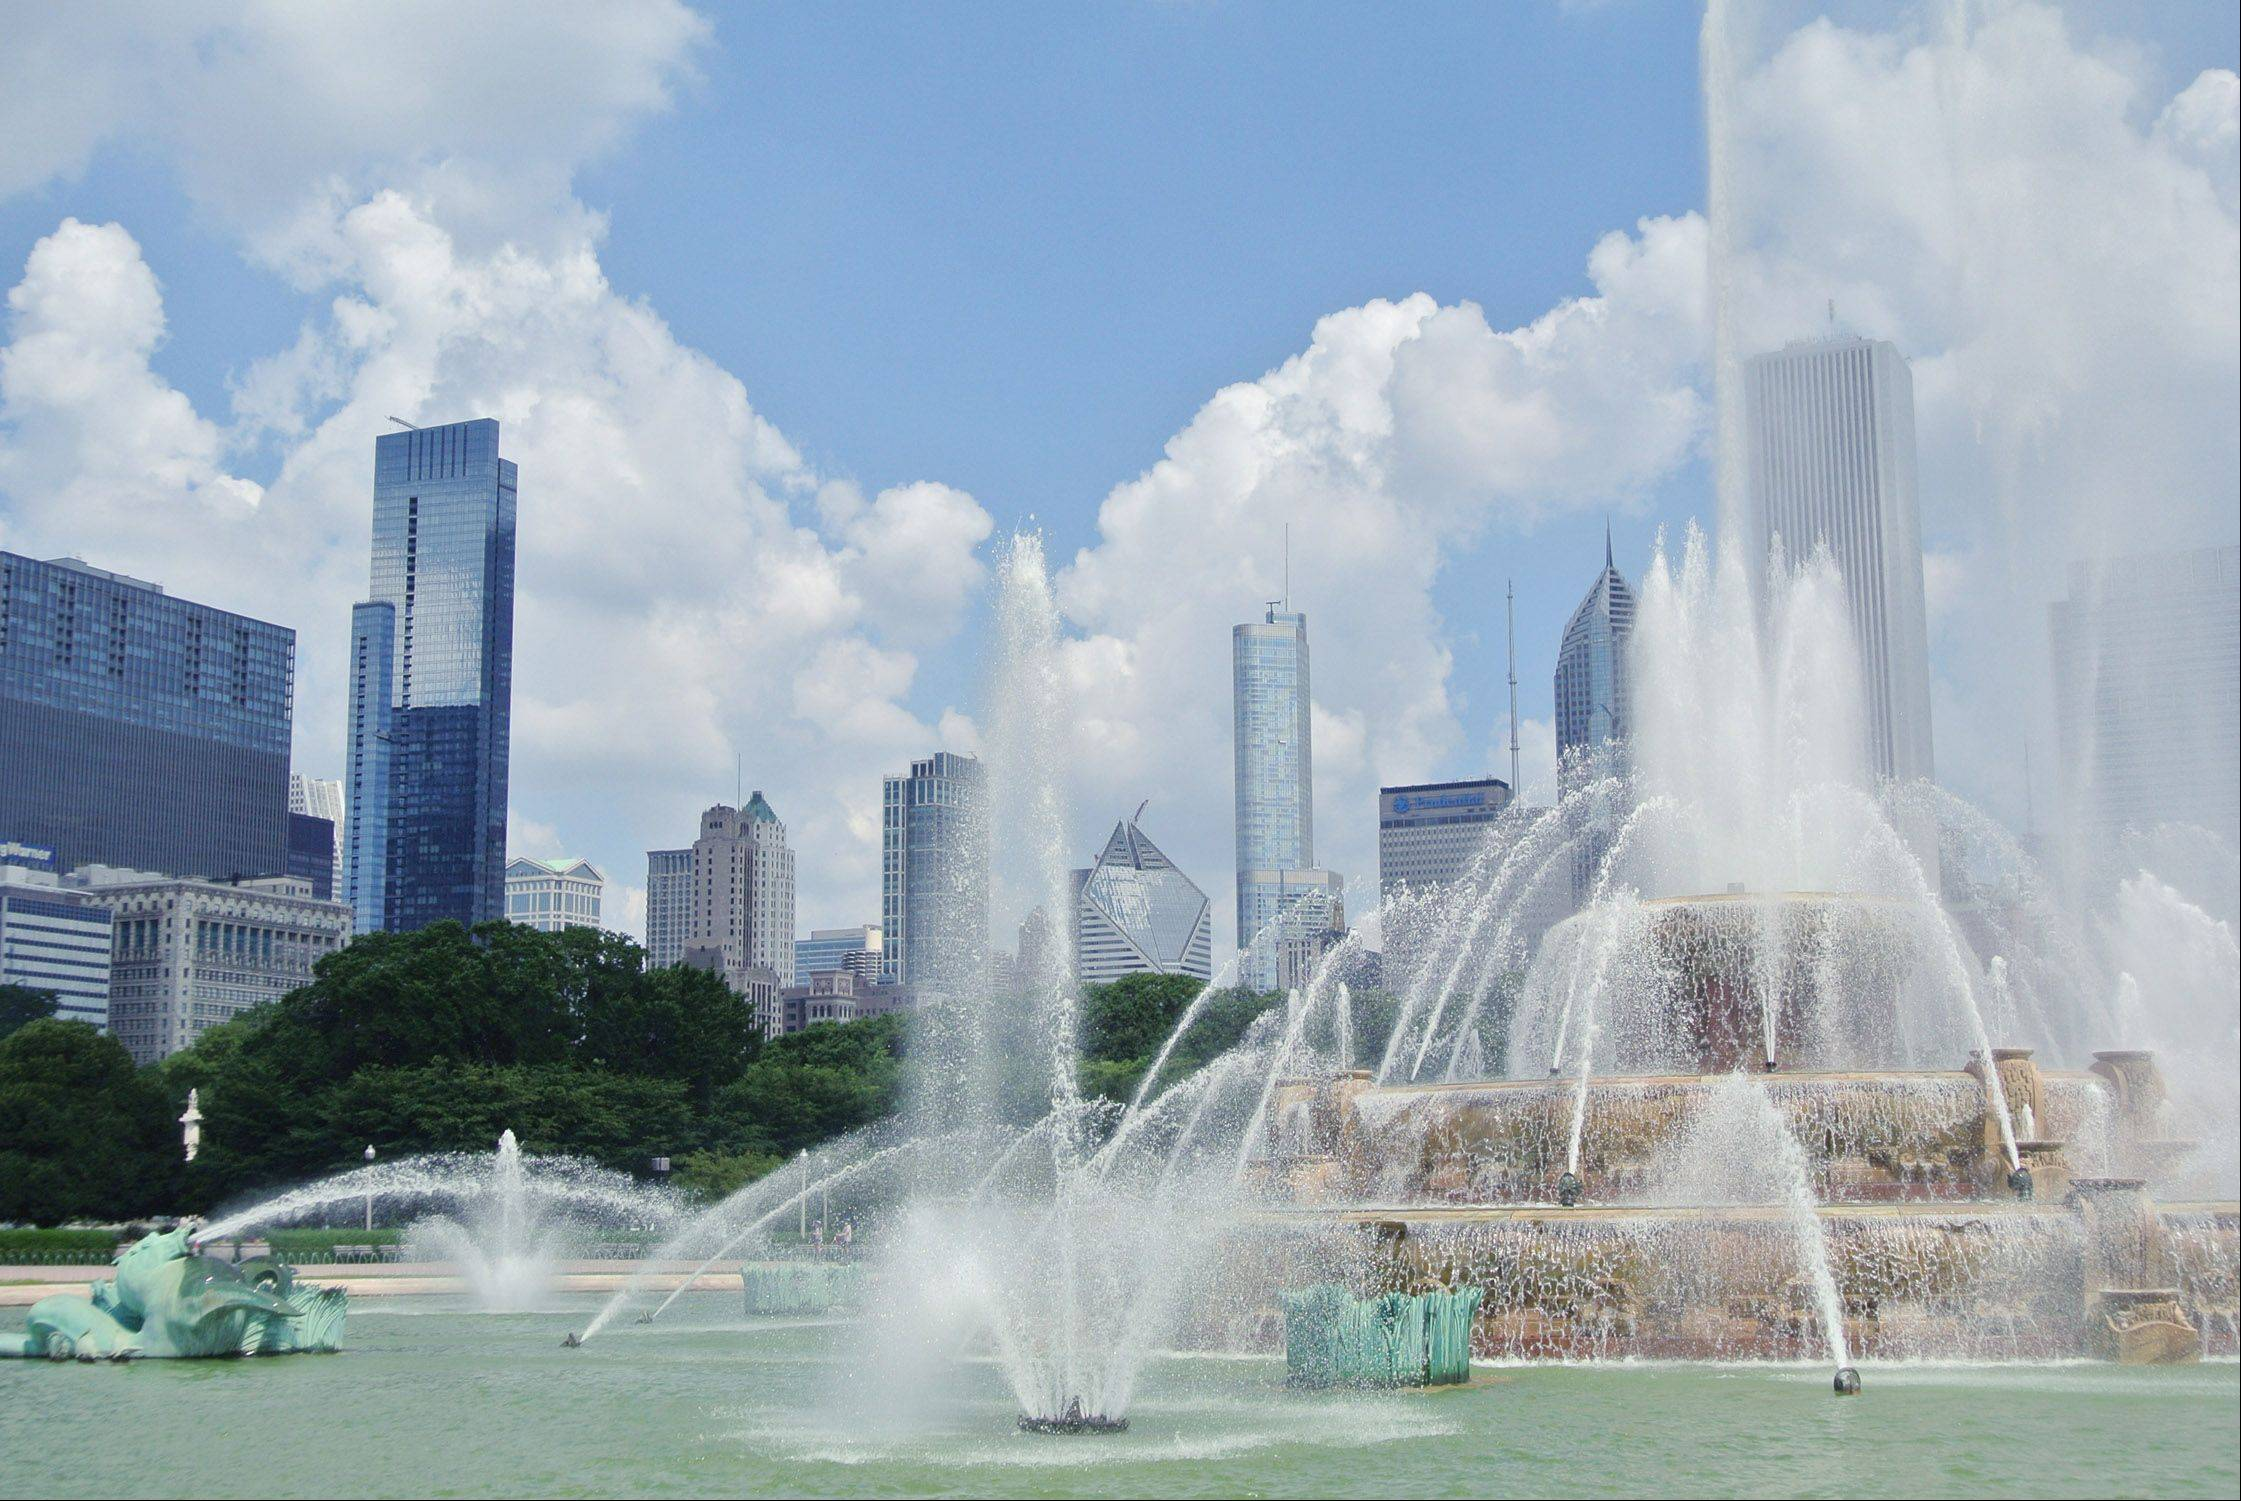 Buckingham Fountain looks refreshing against the downtown Chicago skyline on one of the hottest days of the summer.